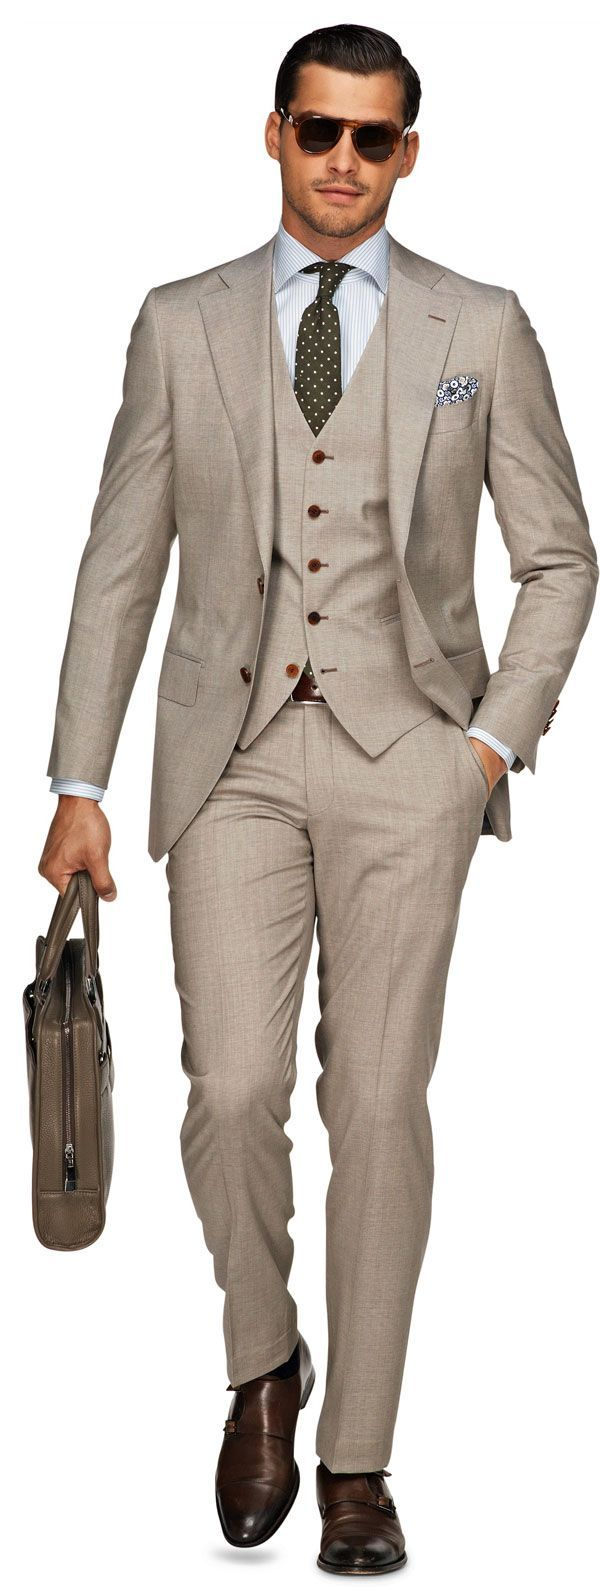 Suit Supply-Lazio-Light-Brown | Men's Fashion | Menswear | Men's ...